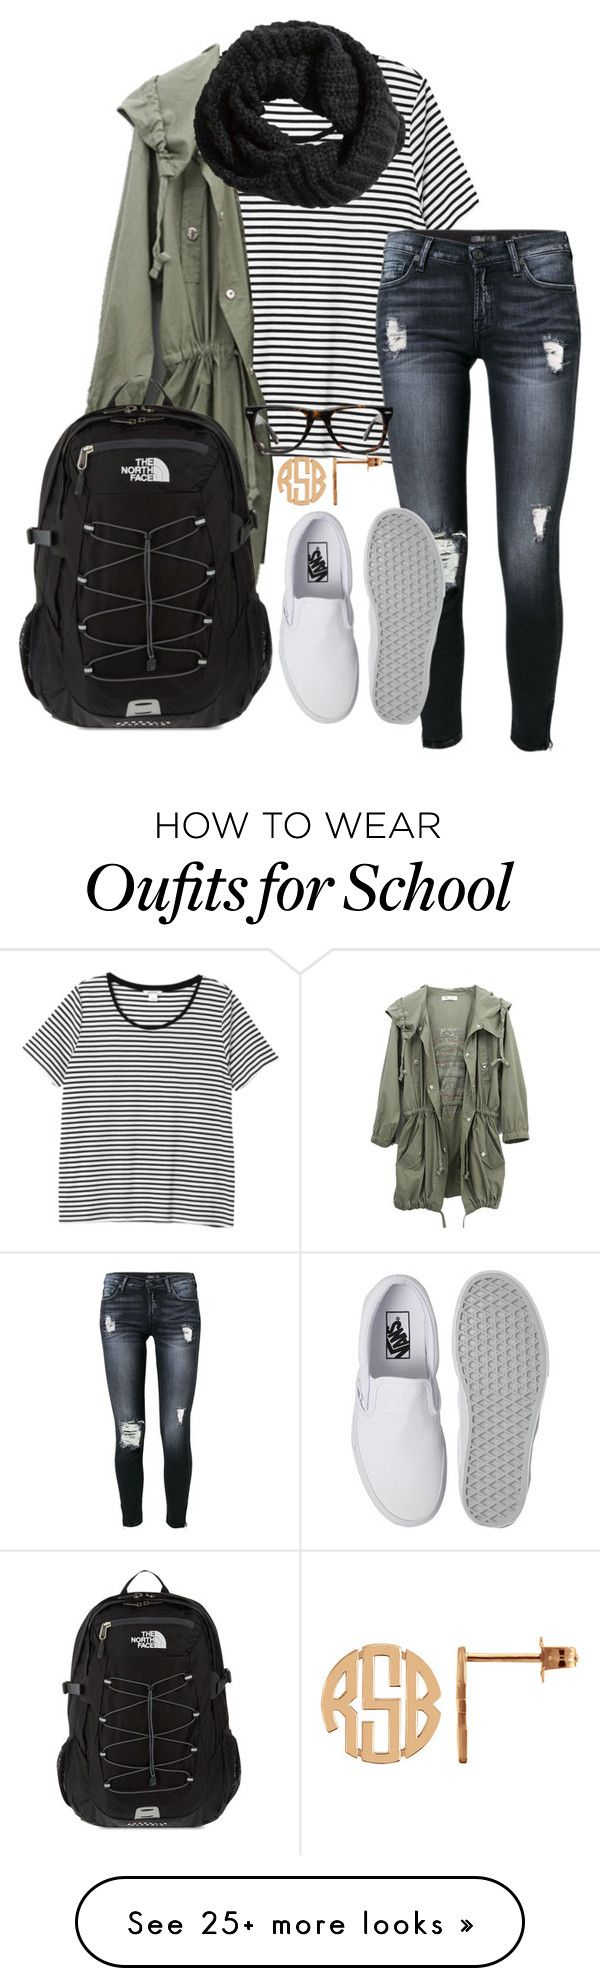 """School tomorrow"" by ambermillard on Polyvore featuring мода, Monki, 7 For All Mankind, Vans, The North Face, Muse, H&M, women's clothing, women и female"